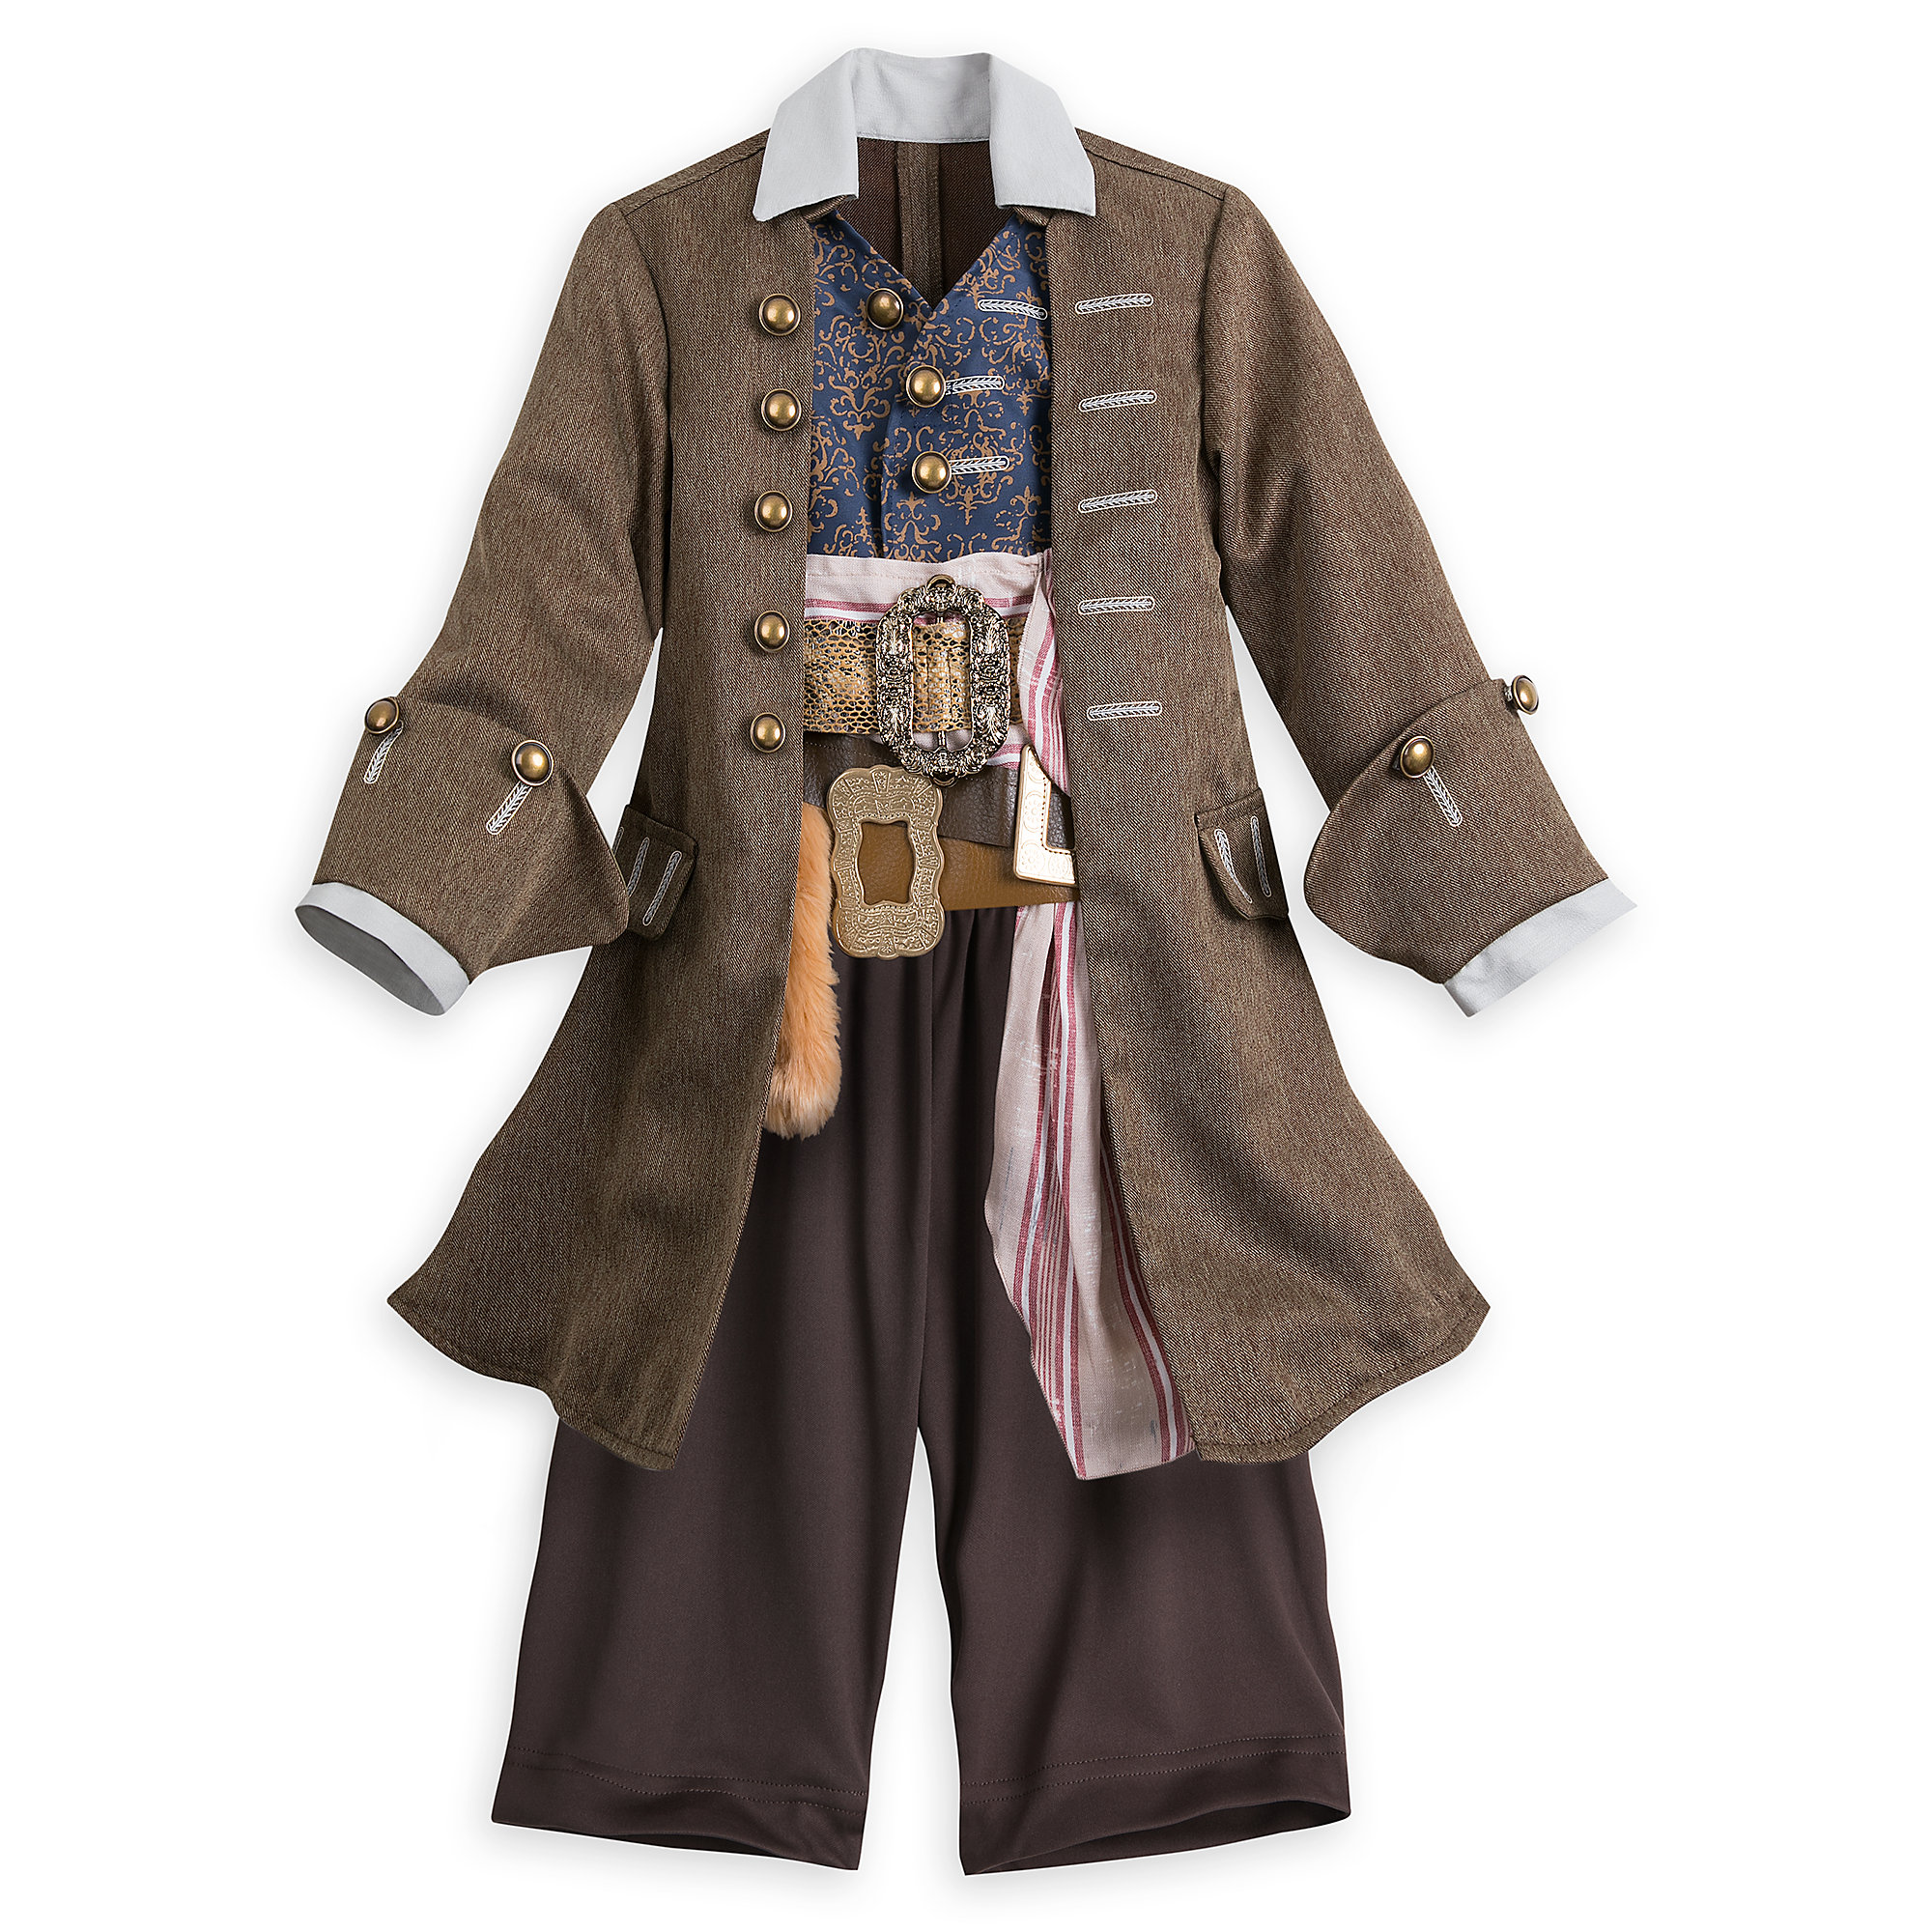 Captain Jack Sparrow Costume Collection for Kids  sc 1 st  shopDisney & Captain Jack Sparrow Costume Collection for Kids | shopDisney